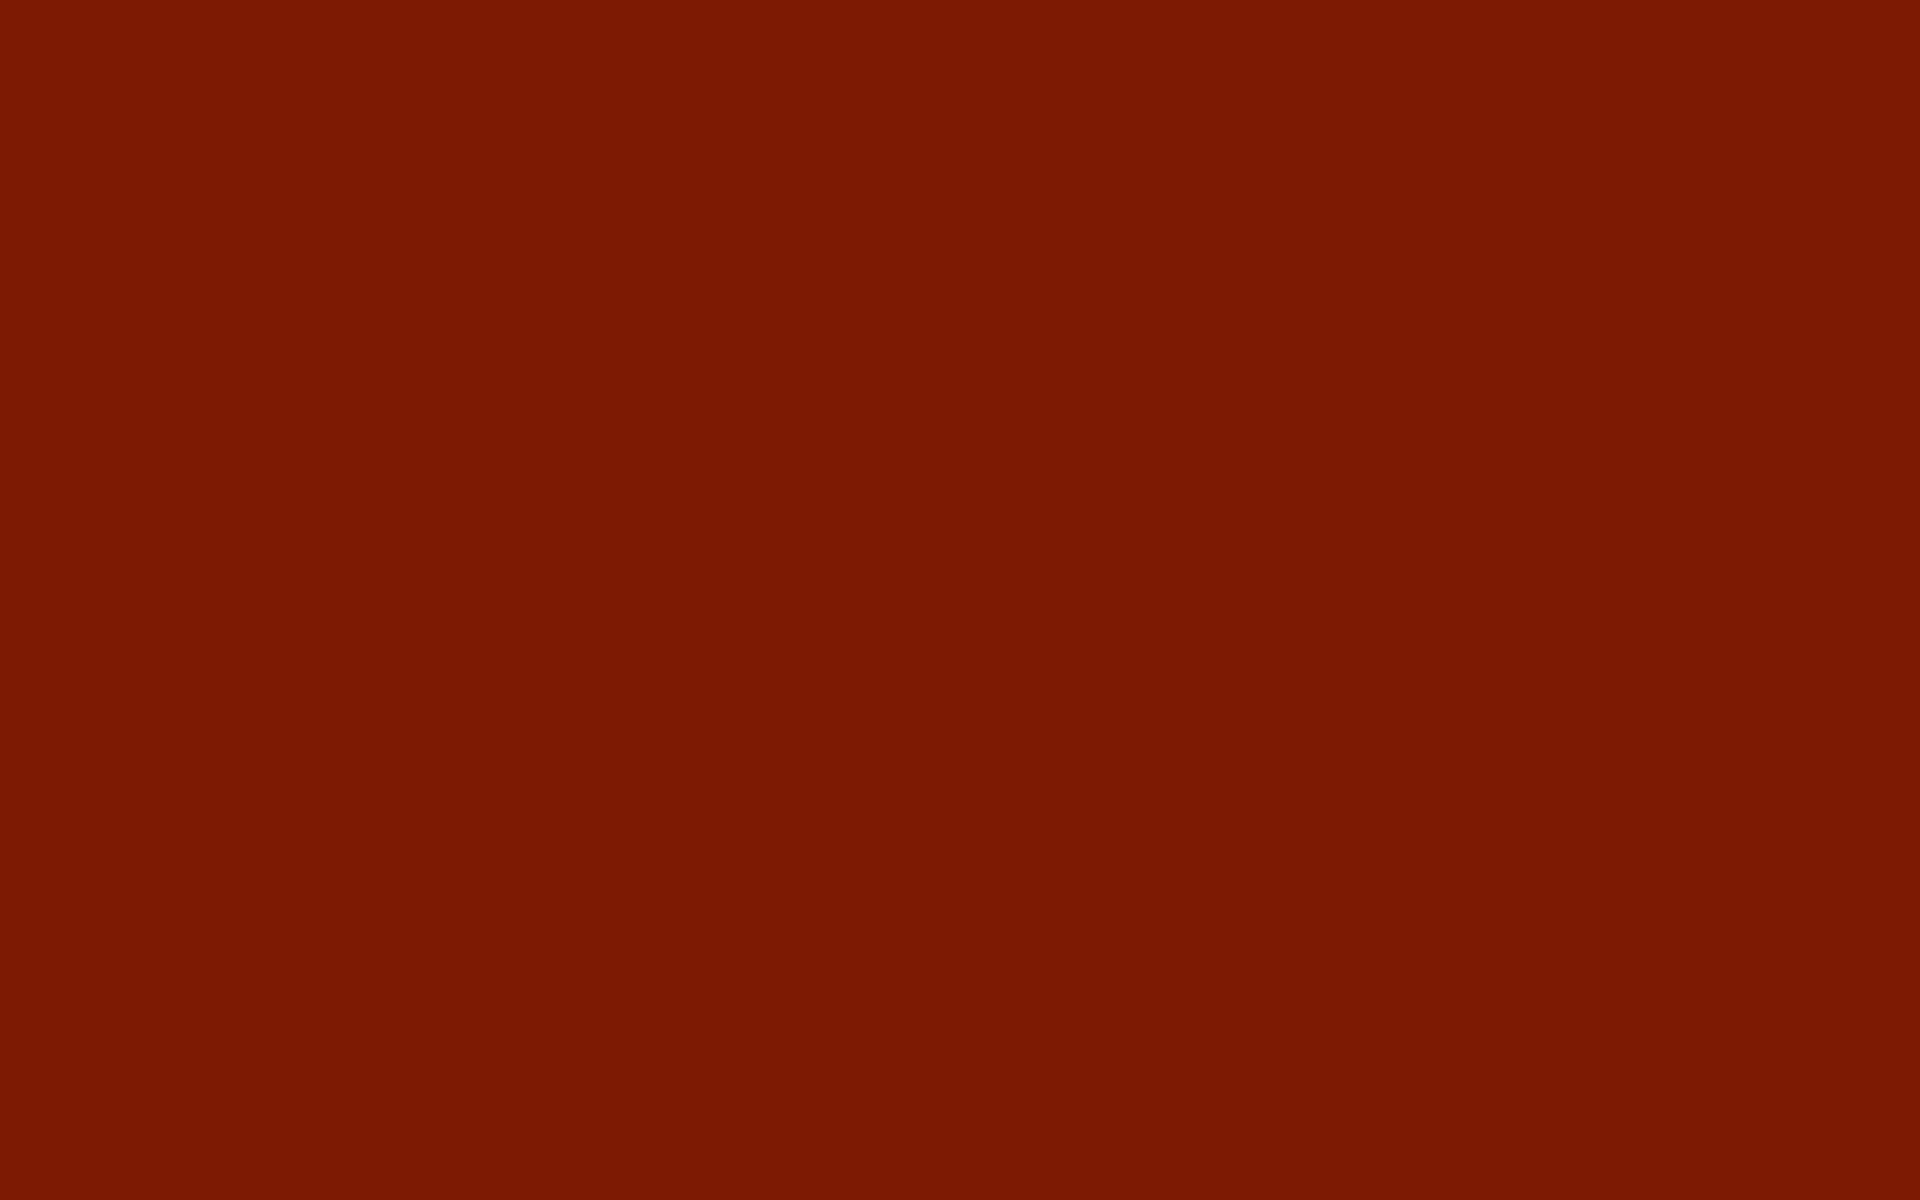 1920x1200 Kenyan Copper Solid Color Background